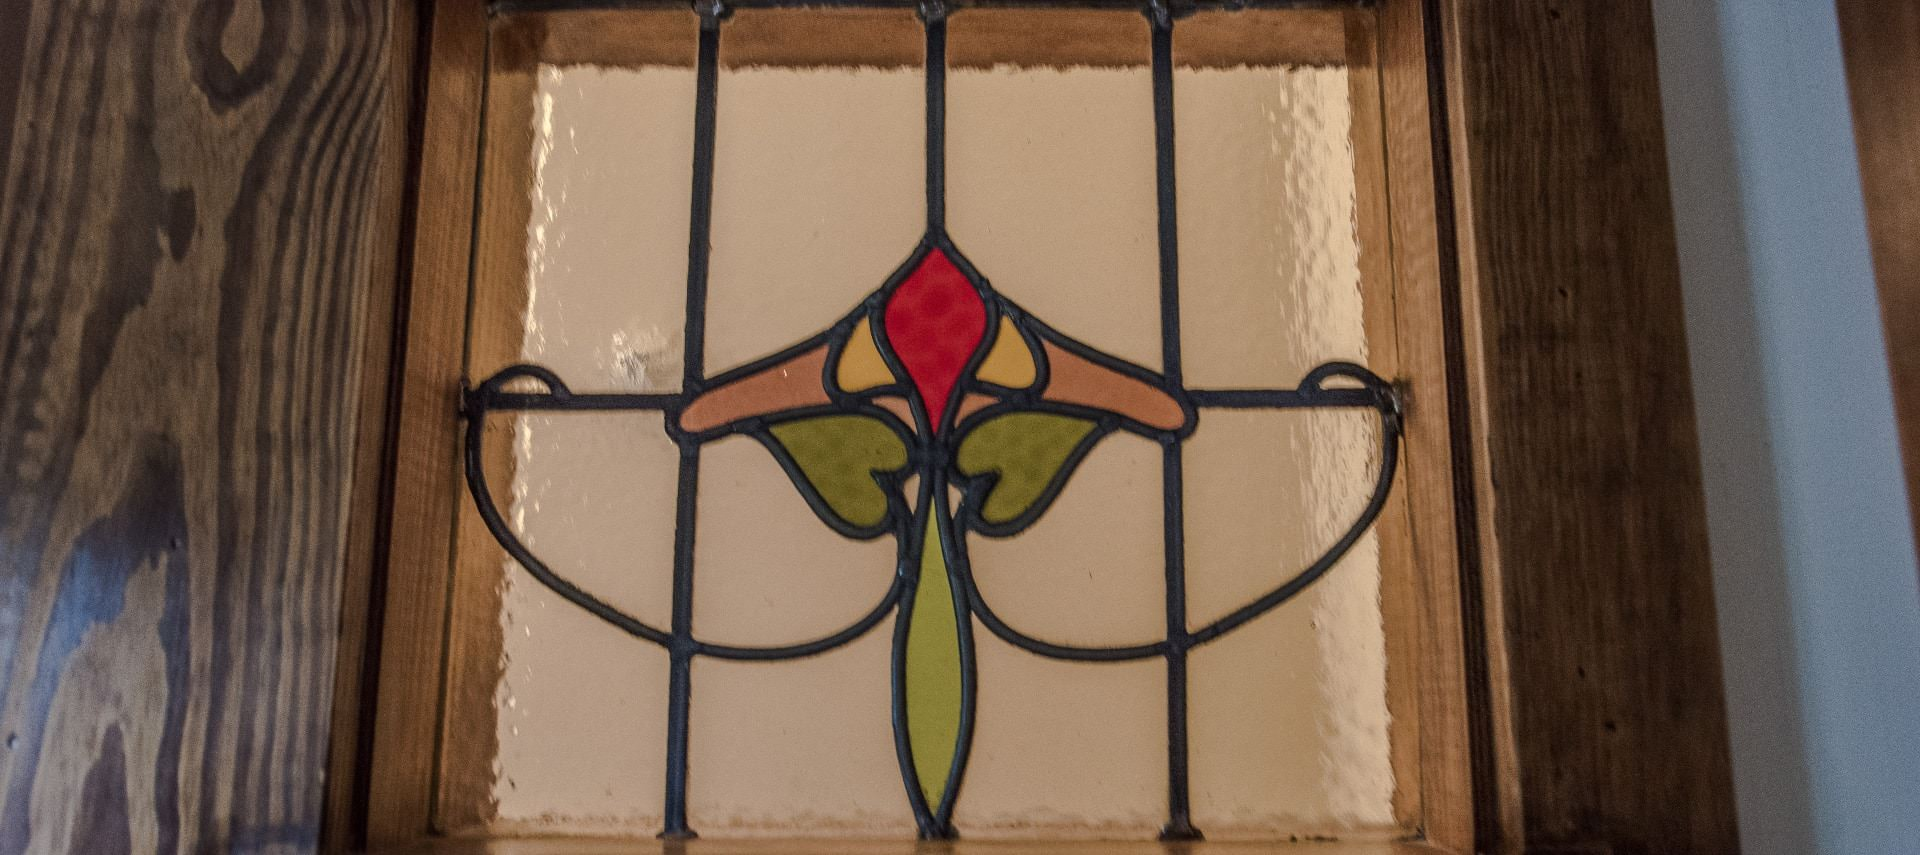 Wooden door with stained glass insert of a red, yellow, and pink flower with green stem